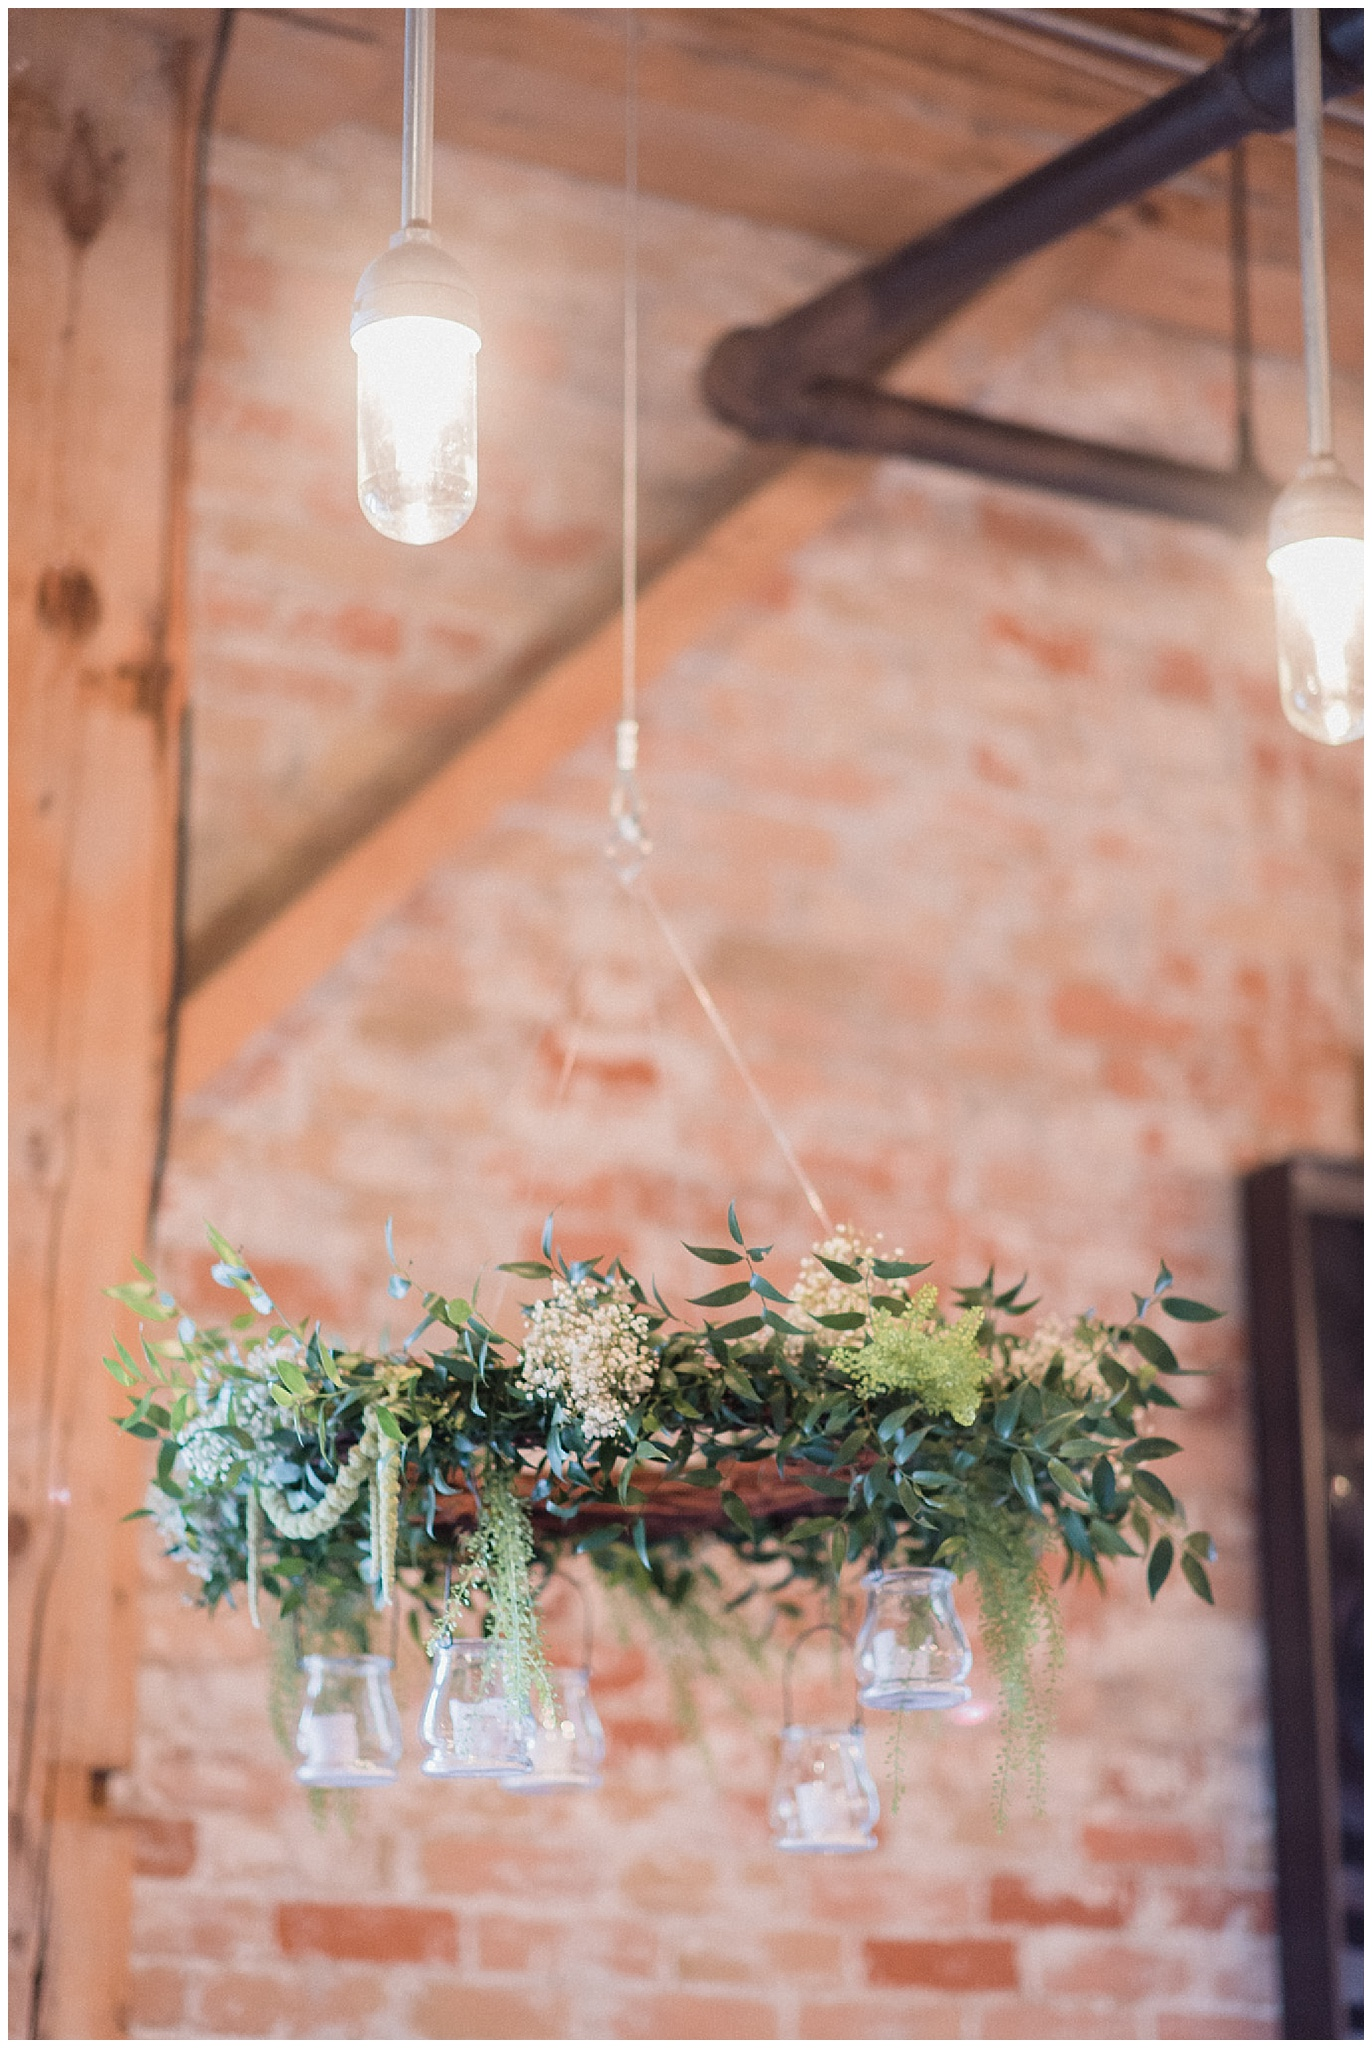 Floral wreath chandeliers, Archeo | Distillery District wedding by Jenn Kavanagh Photography